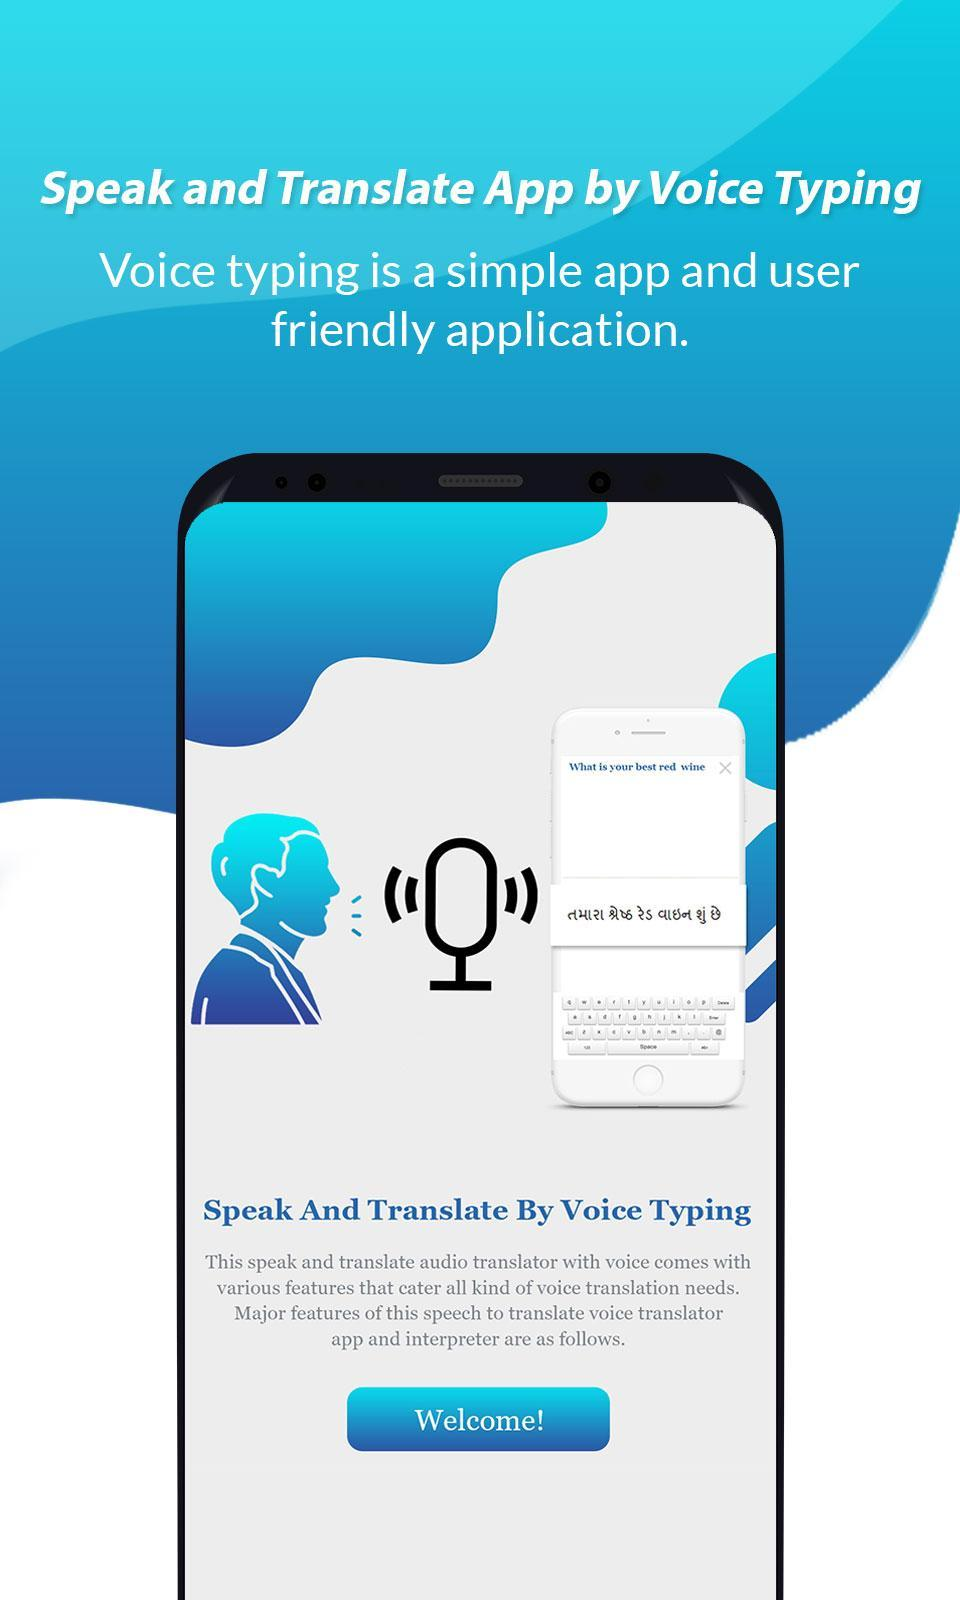 Speak and Translate App Translator by Voice Typing for